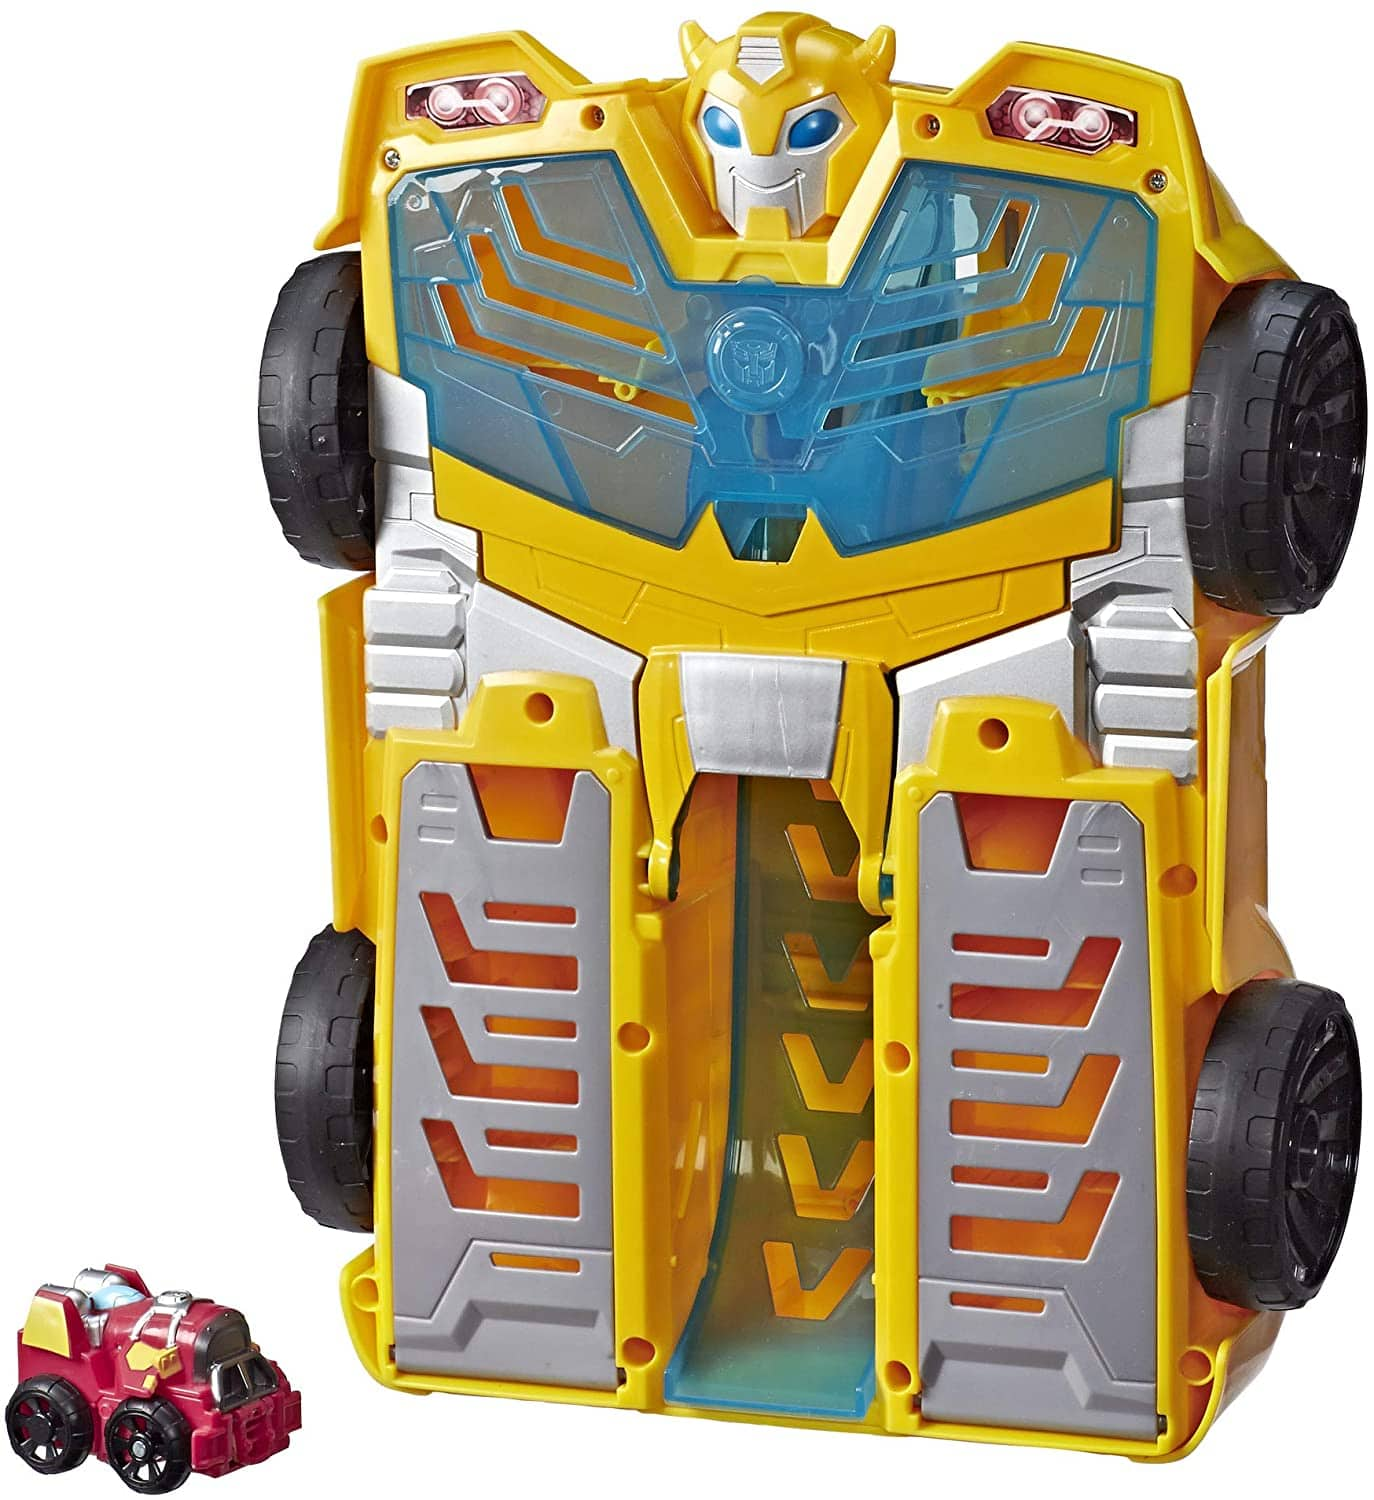 "14"" Playskool Heroes Transformers Rescue Bots Academy Bumblebee Track Tower $18.50 + Free Shipping w/ Prime or on $25+"